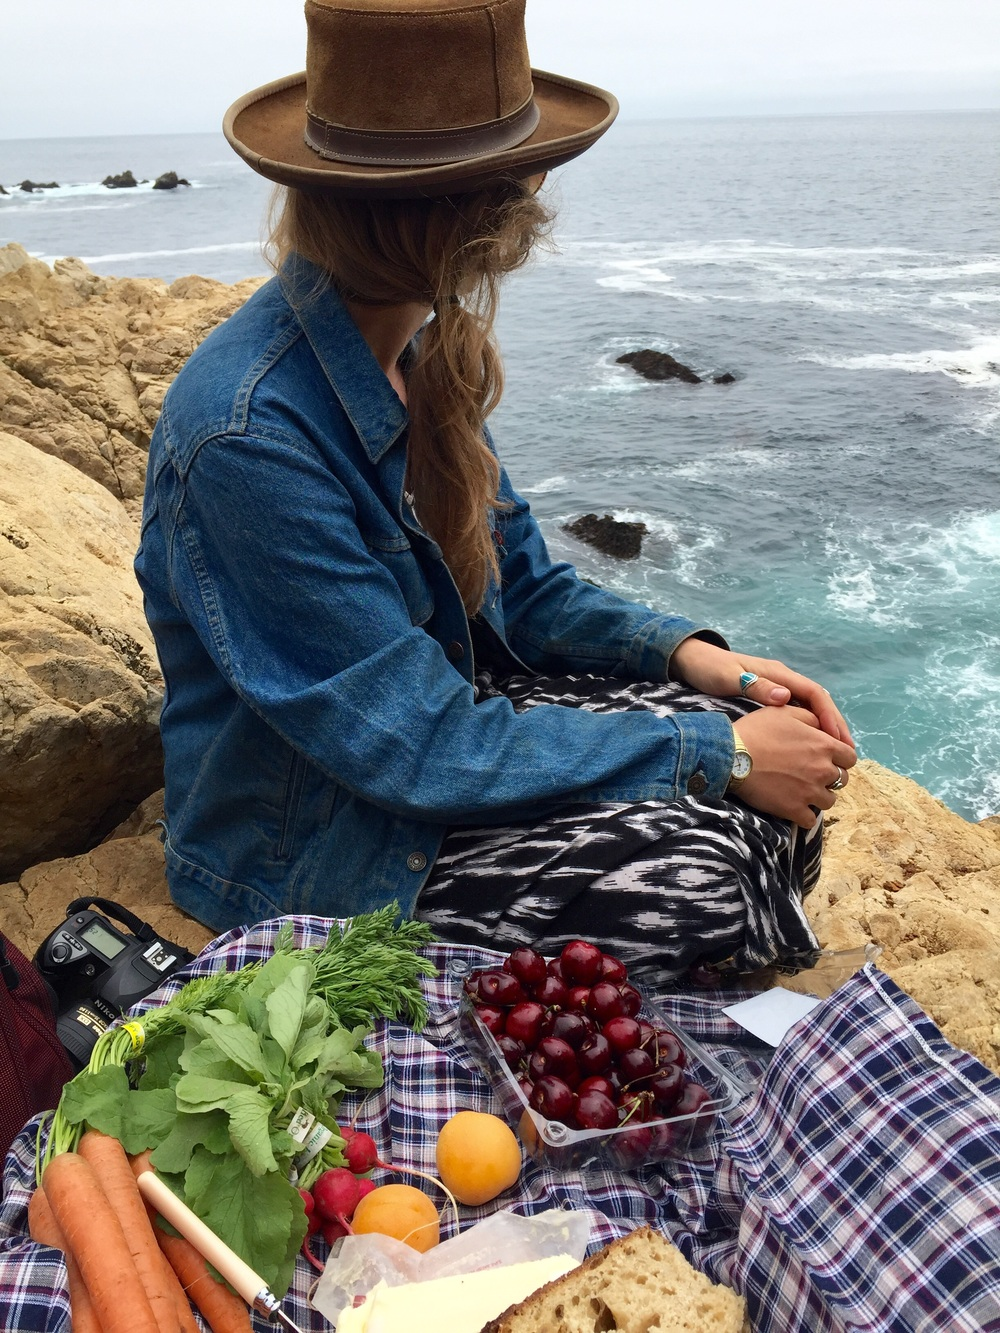 Picnicking in Big Sur, California